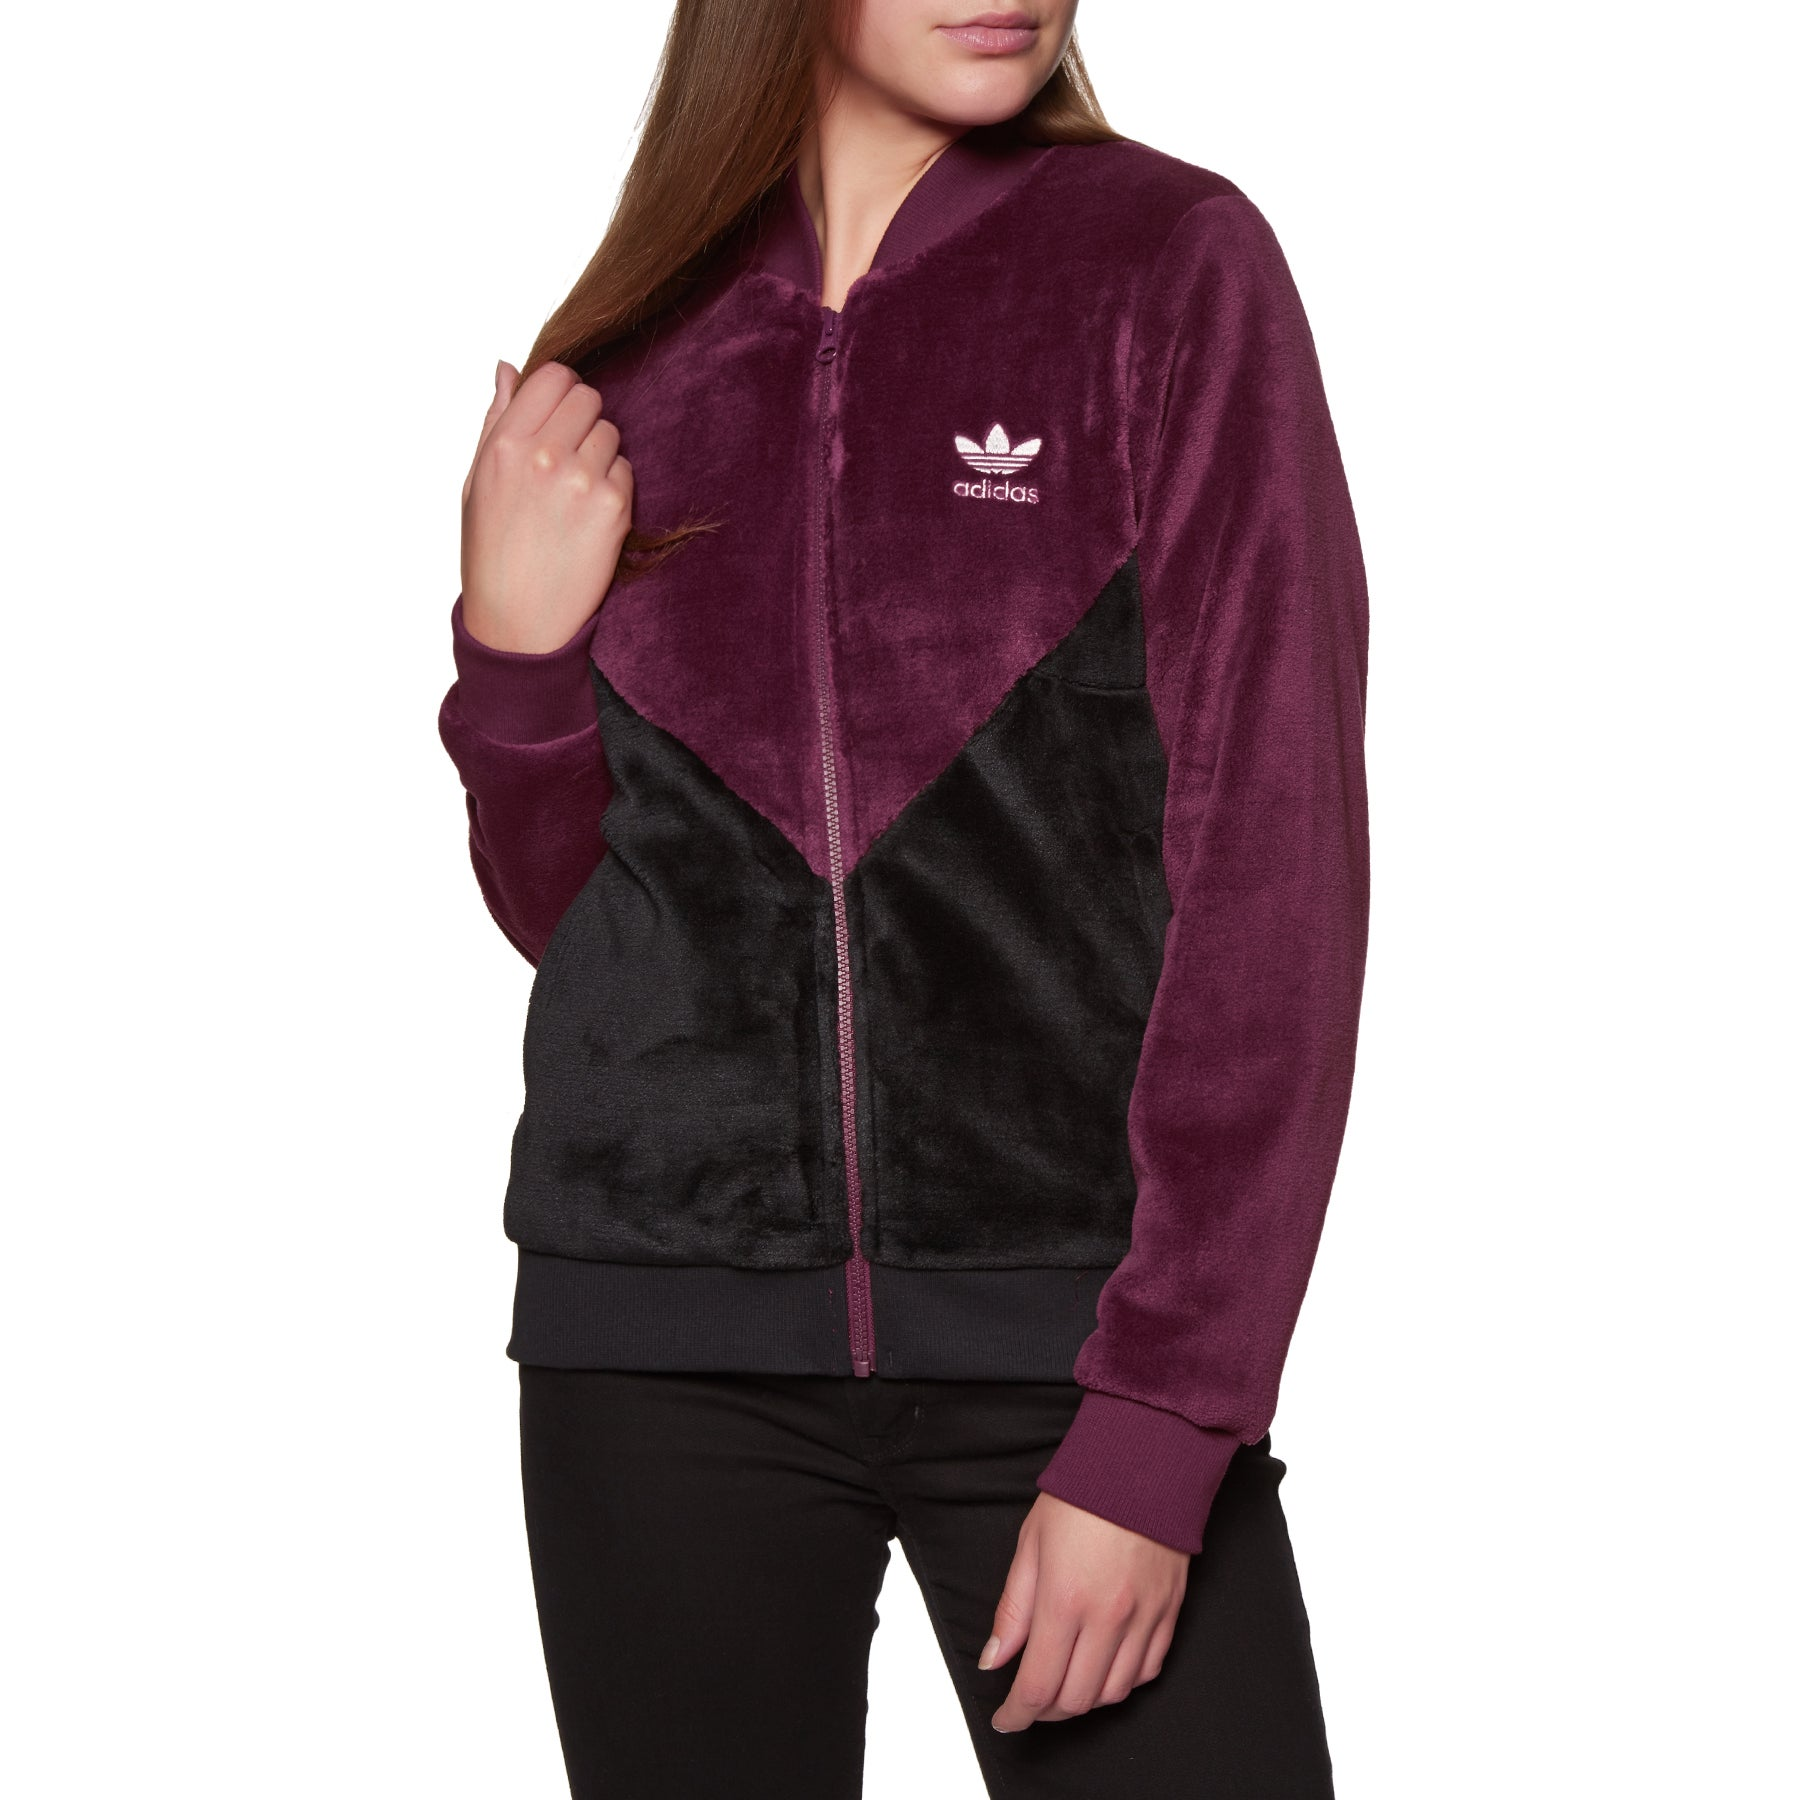 newest efc8f 55a33 Adidas Originals CLRDO Womens Track Jacket